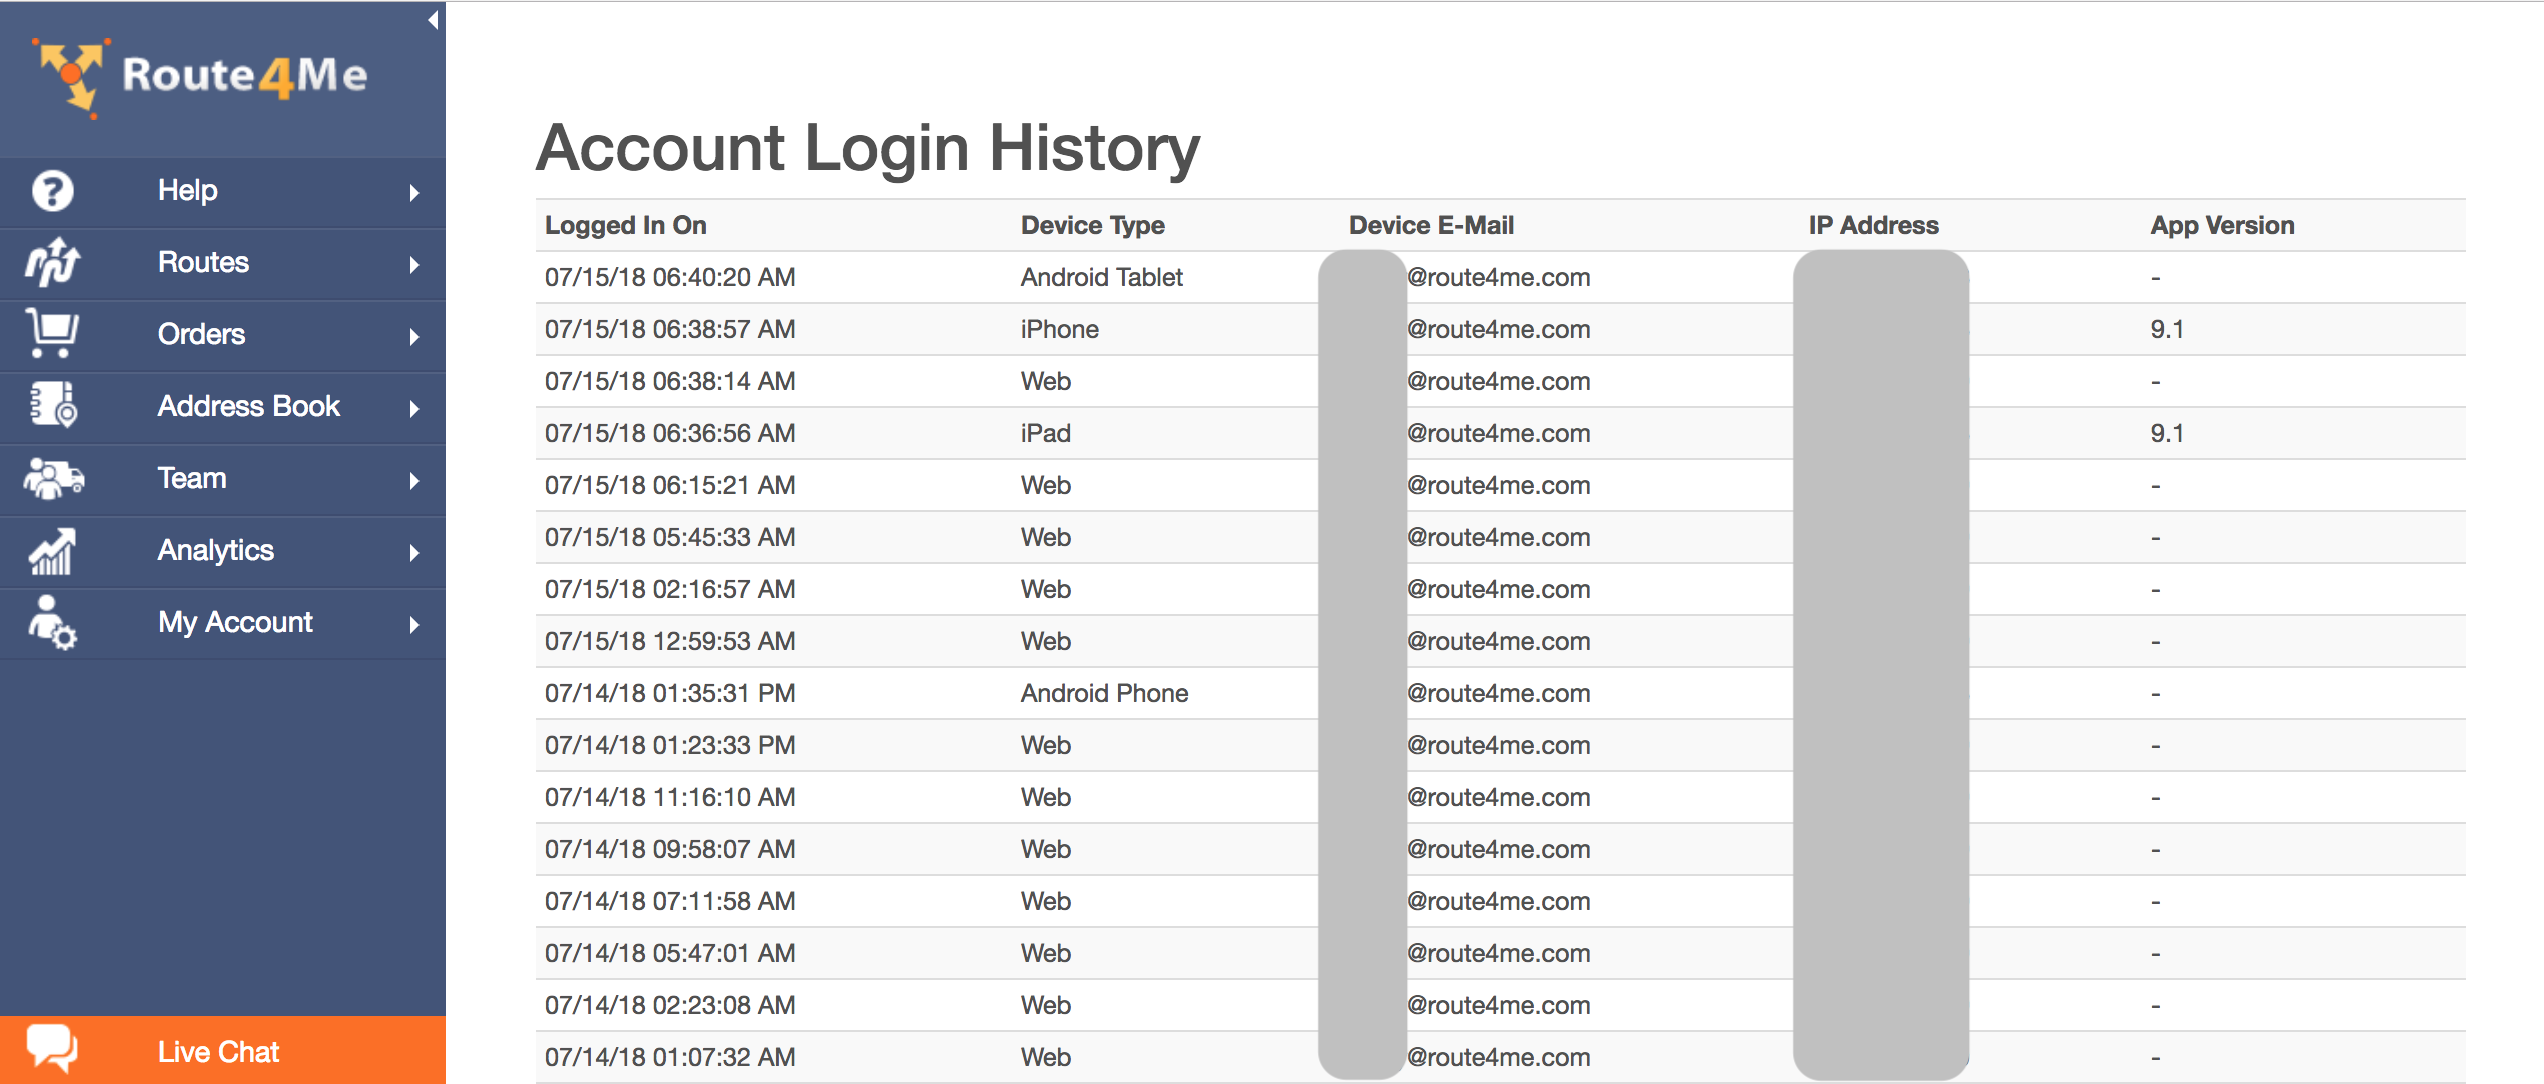 Viewing your Route4Me Account Login History